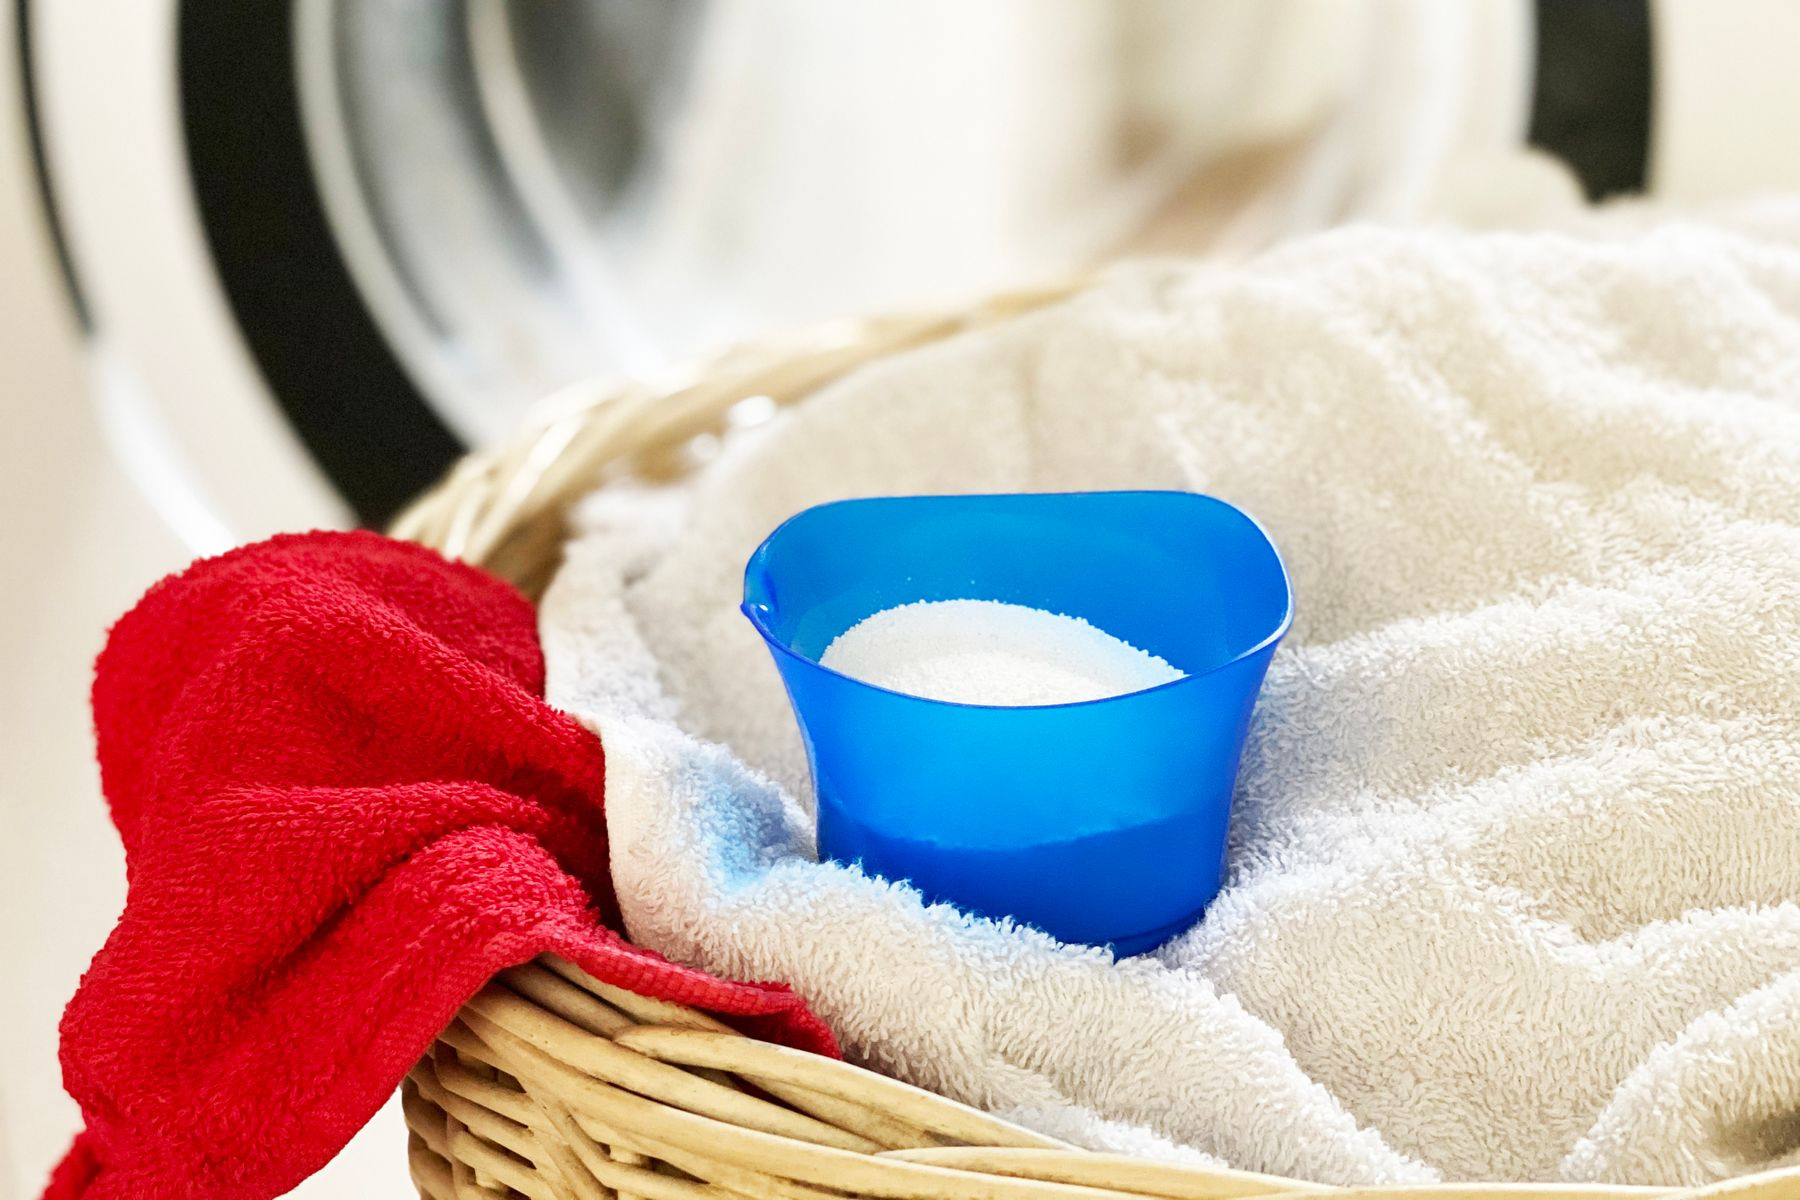 Laundry powder on top of  a basket containing towels